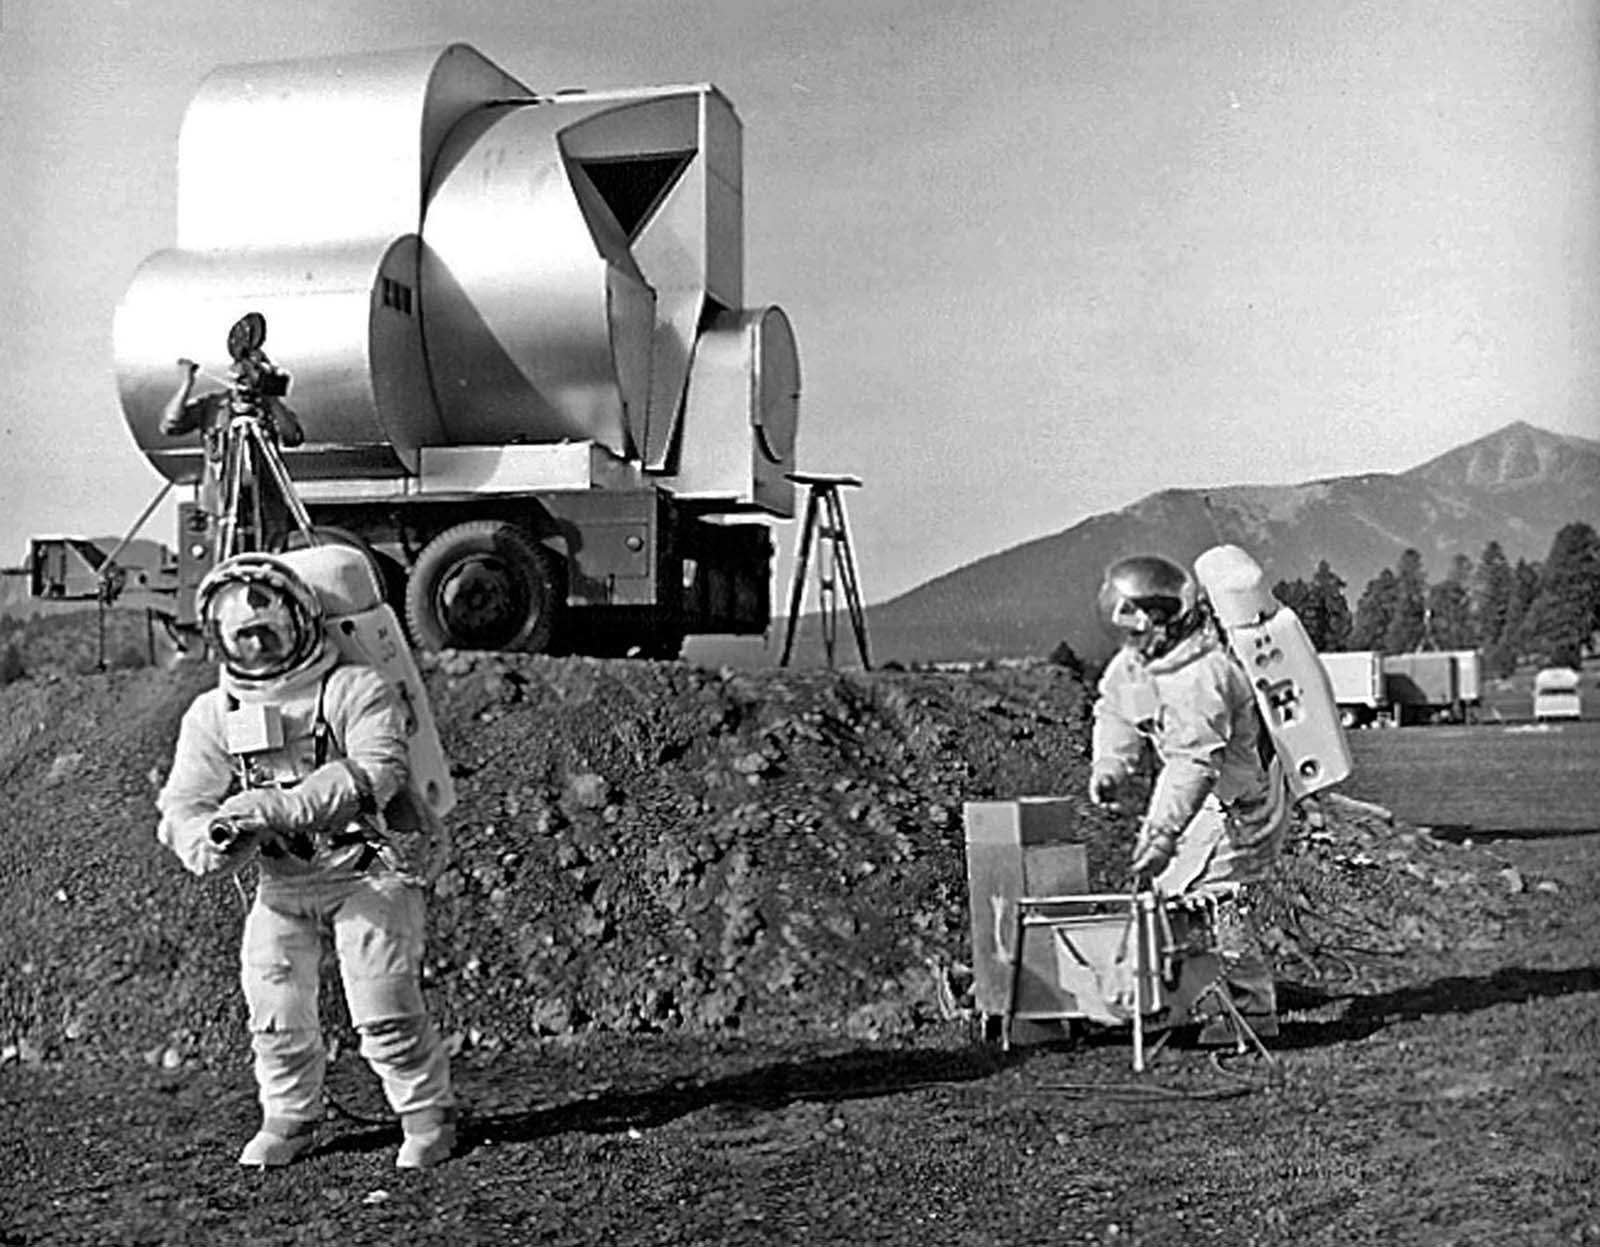 The USGS geologists Tim Hait and David Schleicher work in spacesuits during an early Apollo field test at Cinder Lake Crater Field #1, with a simulated lunar-module ascent stage mock-up parked on an earthen ramp in the background.